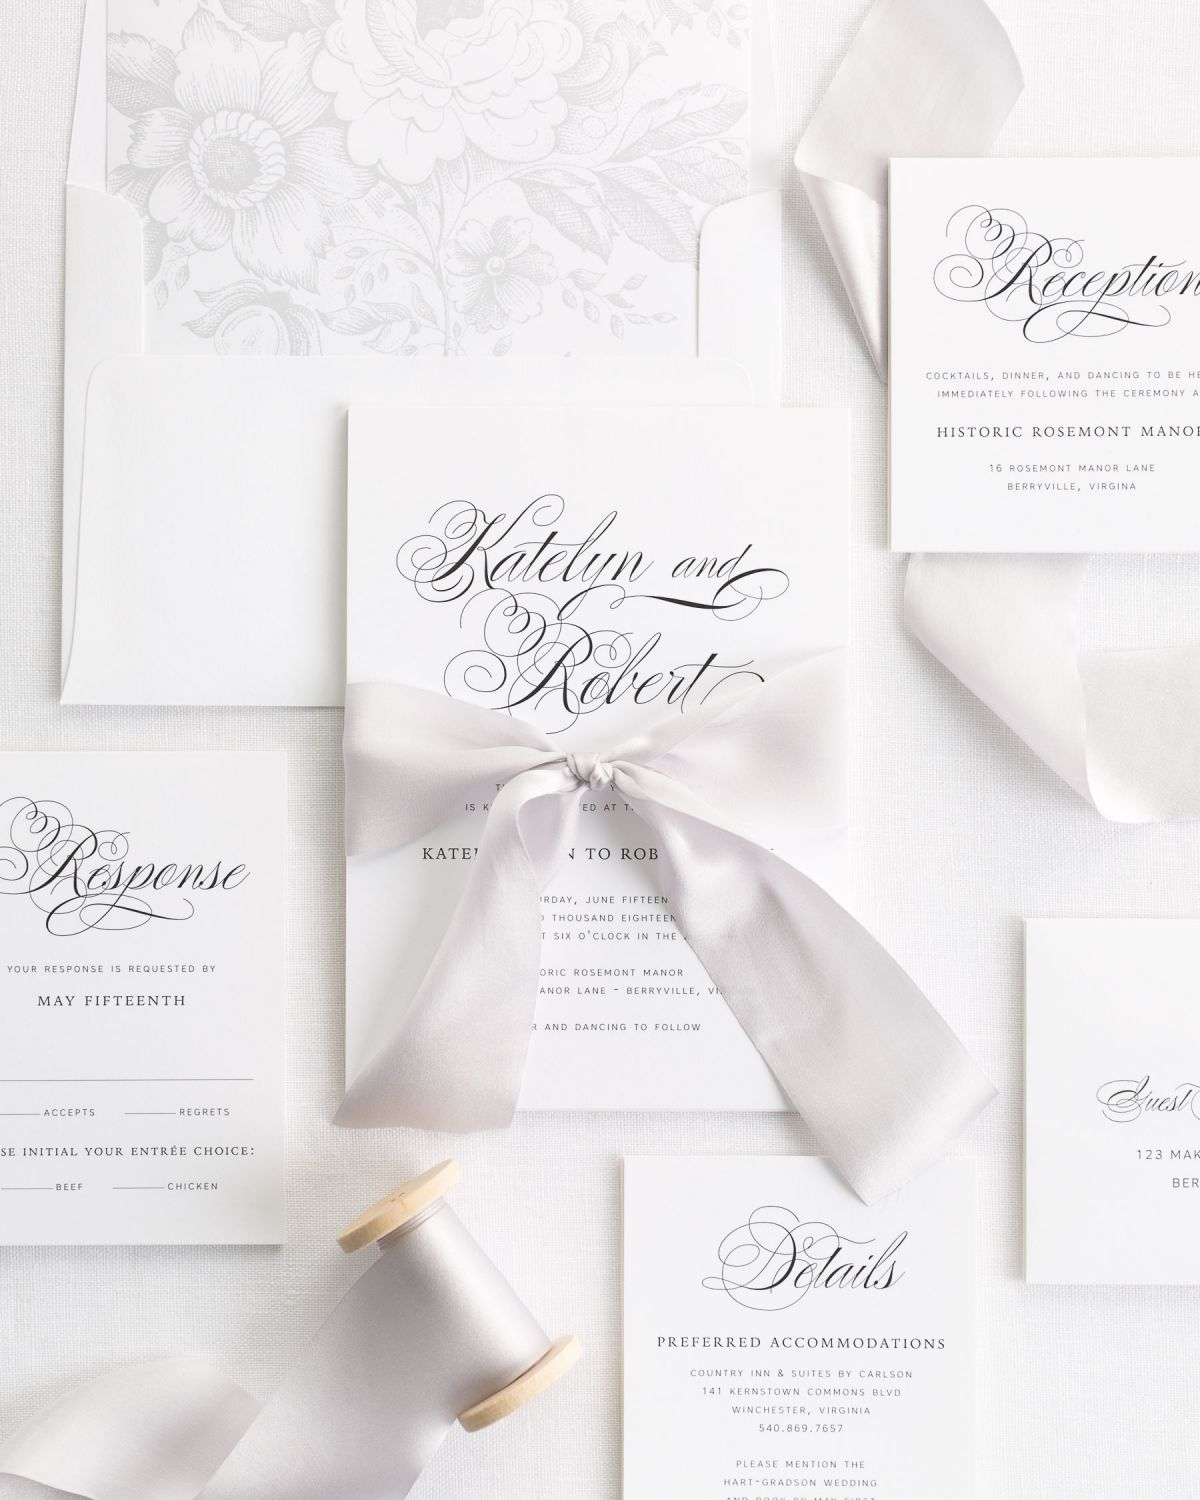 Complete Wedding Invitation Package with Platinum Ribbon and Enclosures